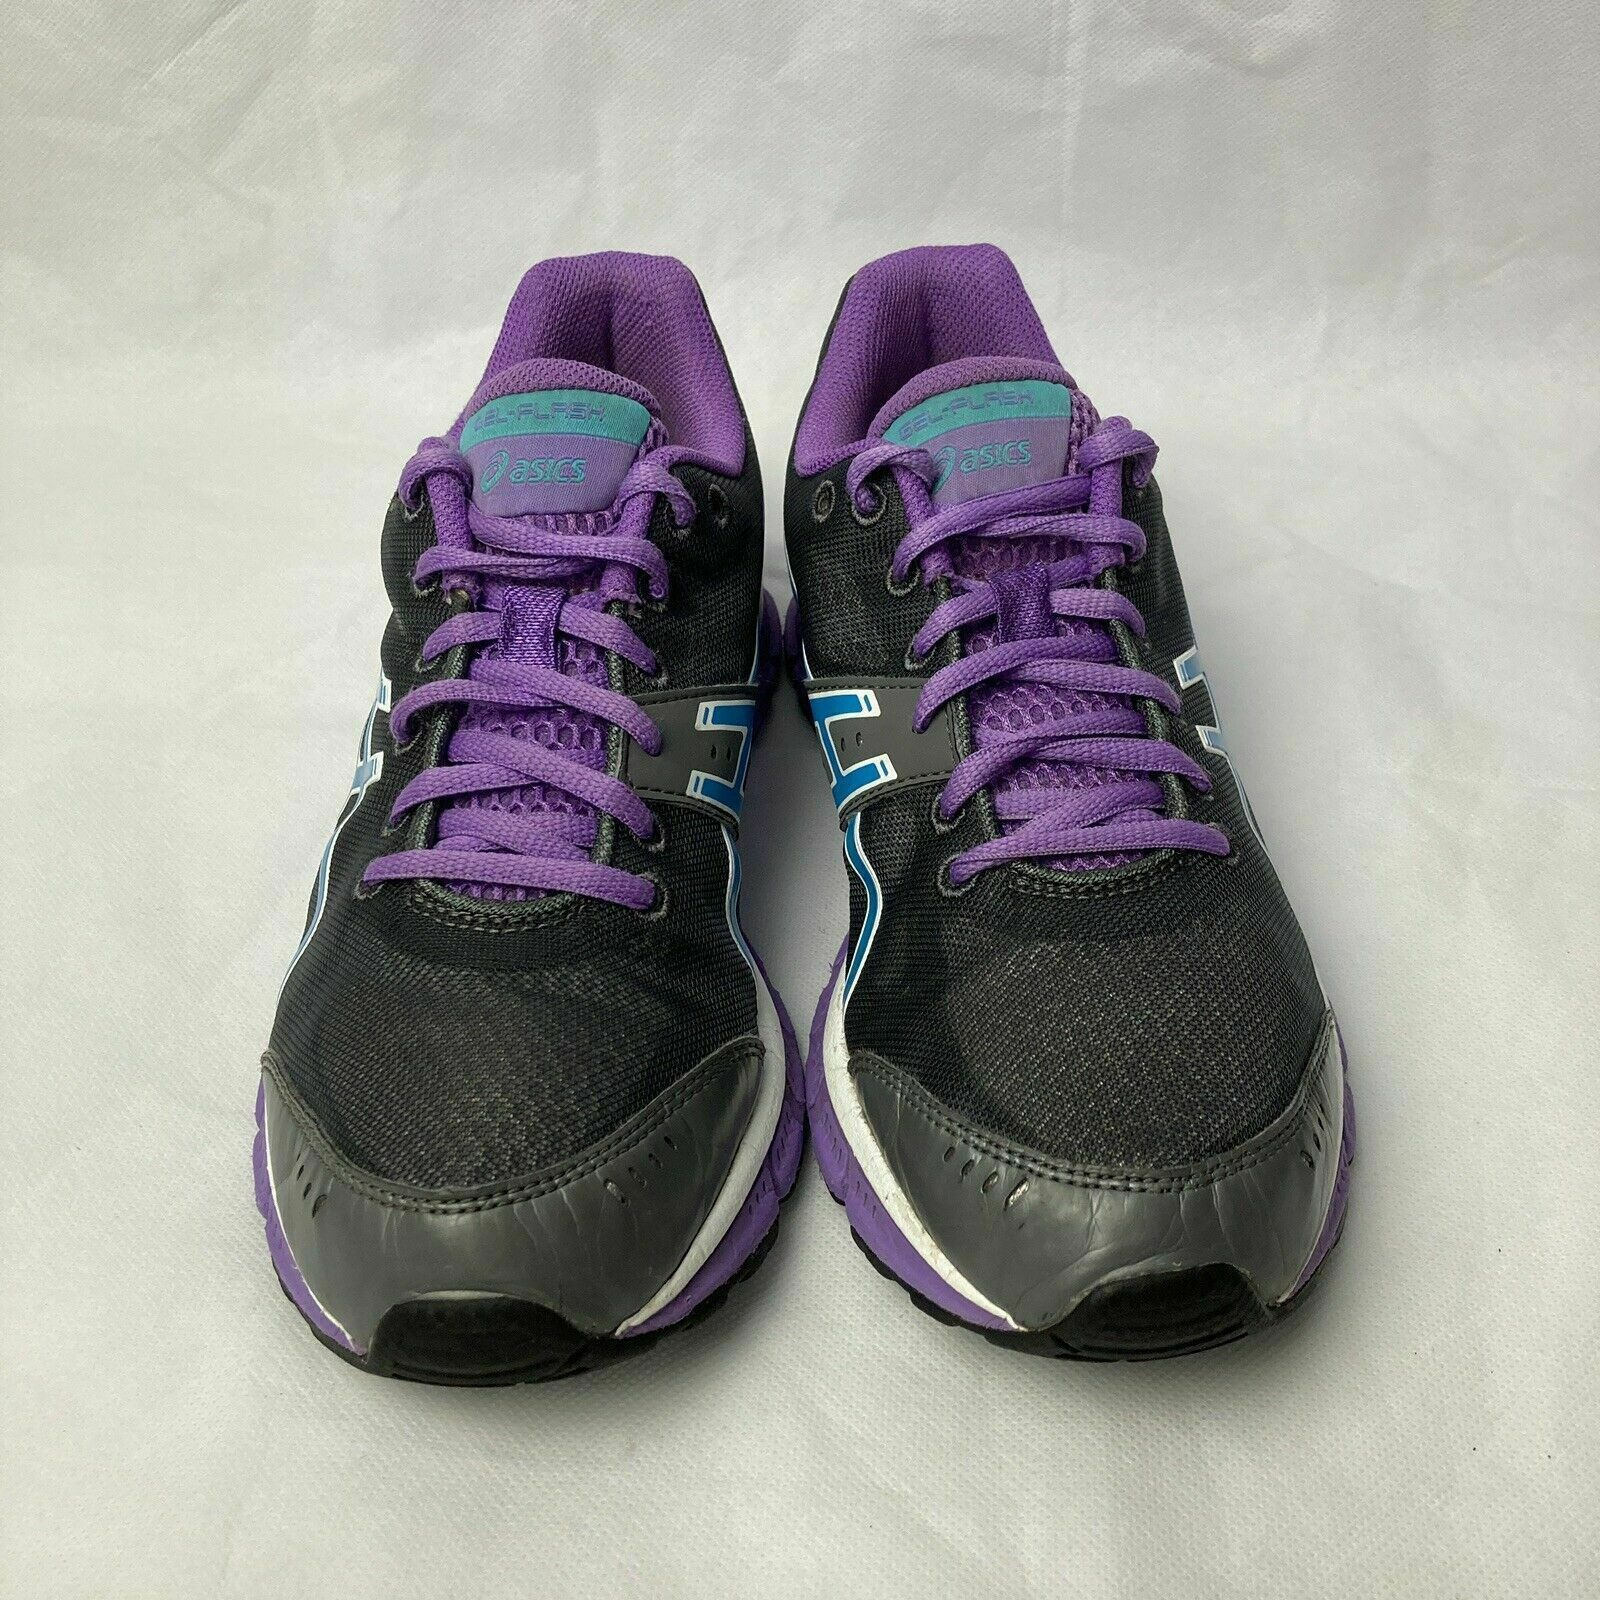 Primary image for Womens Asics Gel Flash Running Training Black/ Purple Shoes size 7 T2J5N